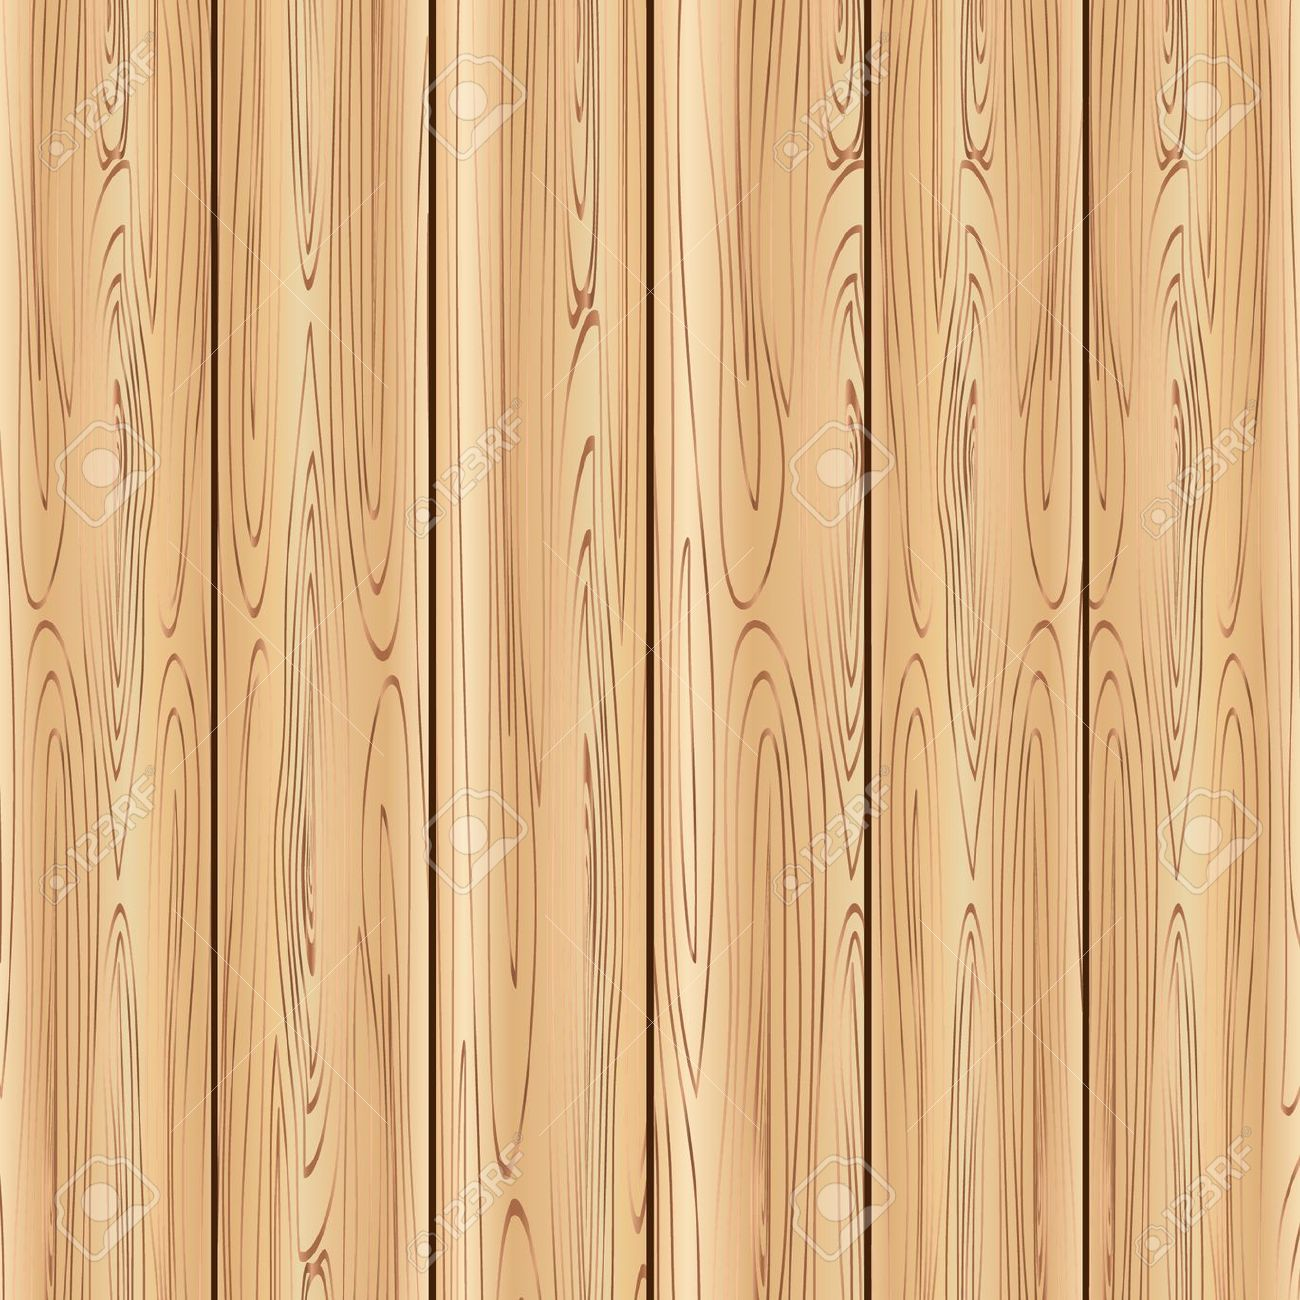 Wood paneling clipart clipground - Wooden panel art ...